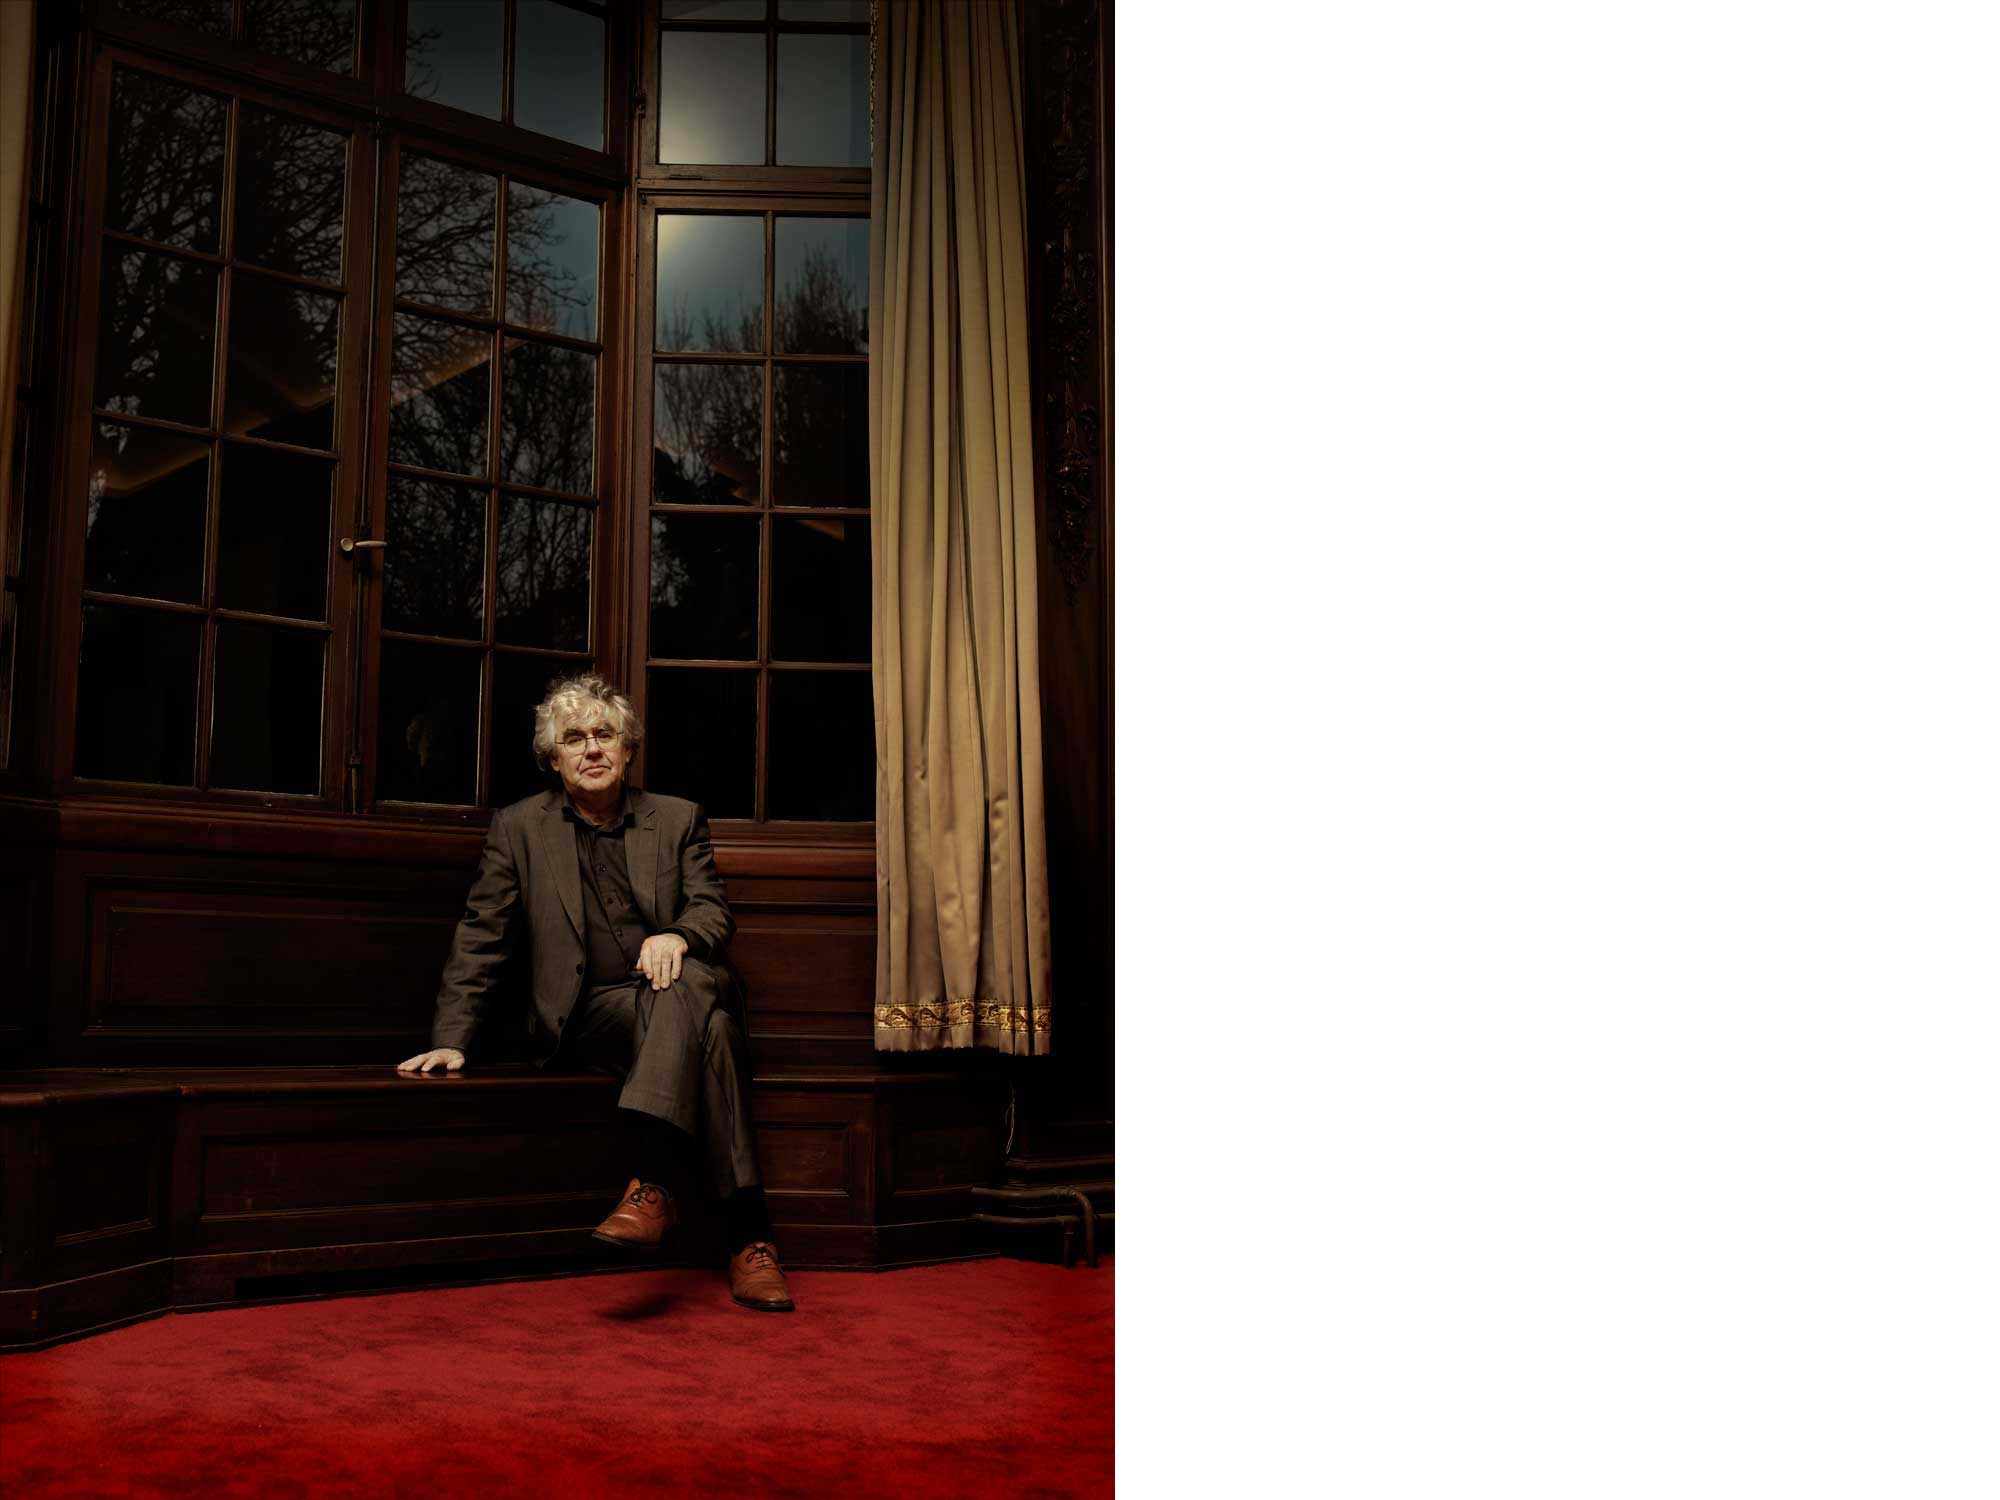 Portrait of Geert Mak, dutch writer, shot on location at his publishers office.